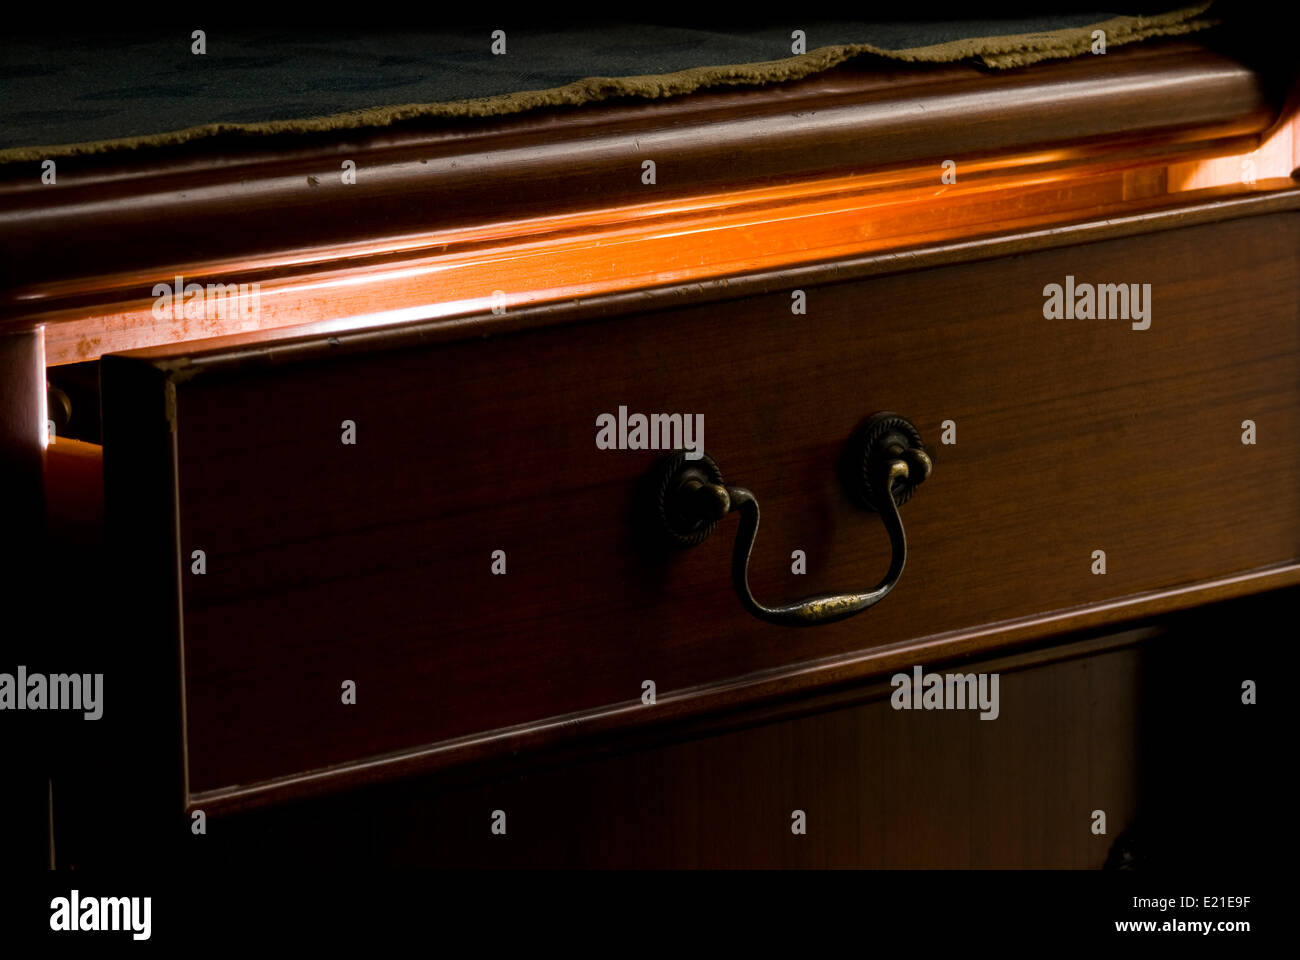 Mystery light from the wooden drawer - Stock Image